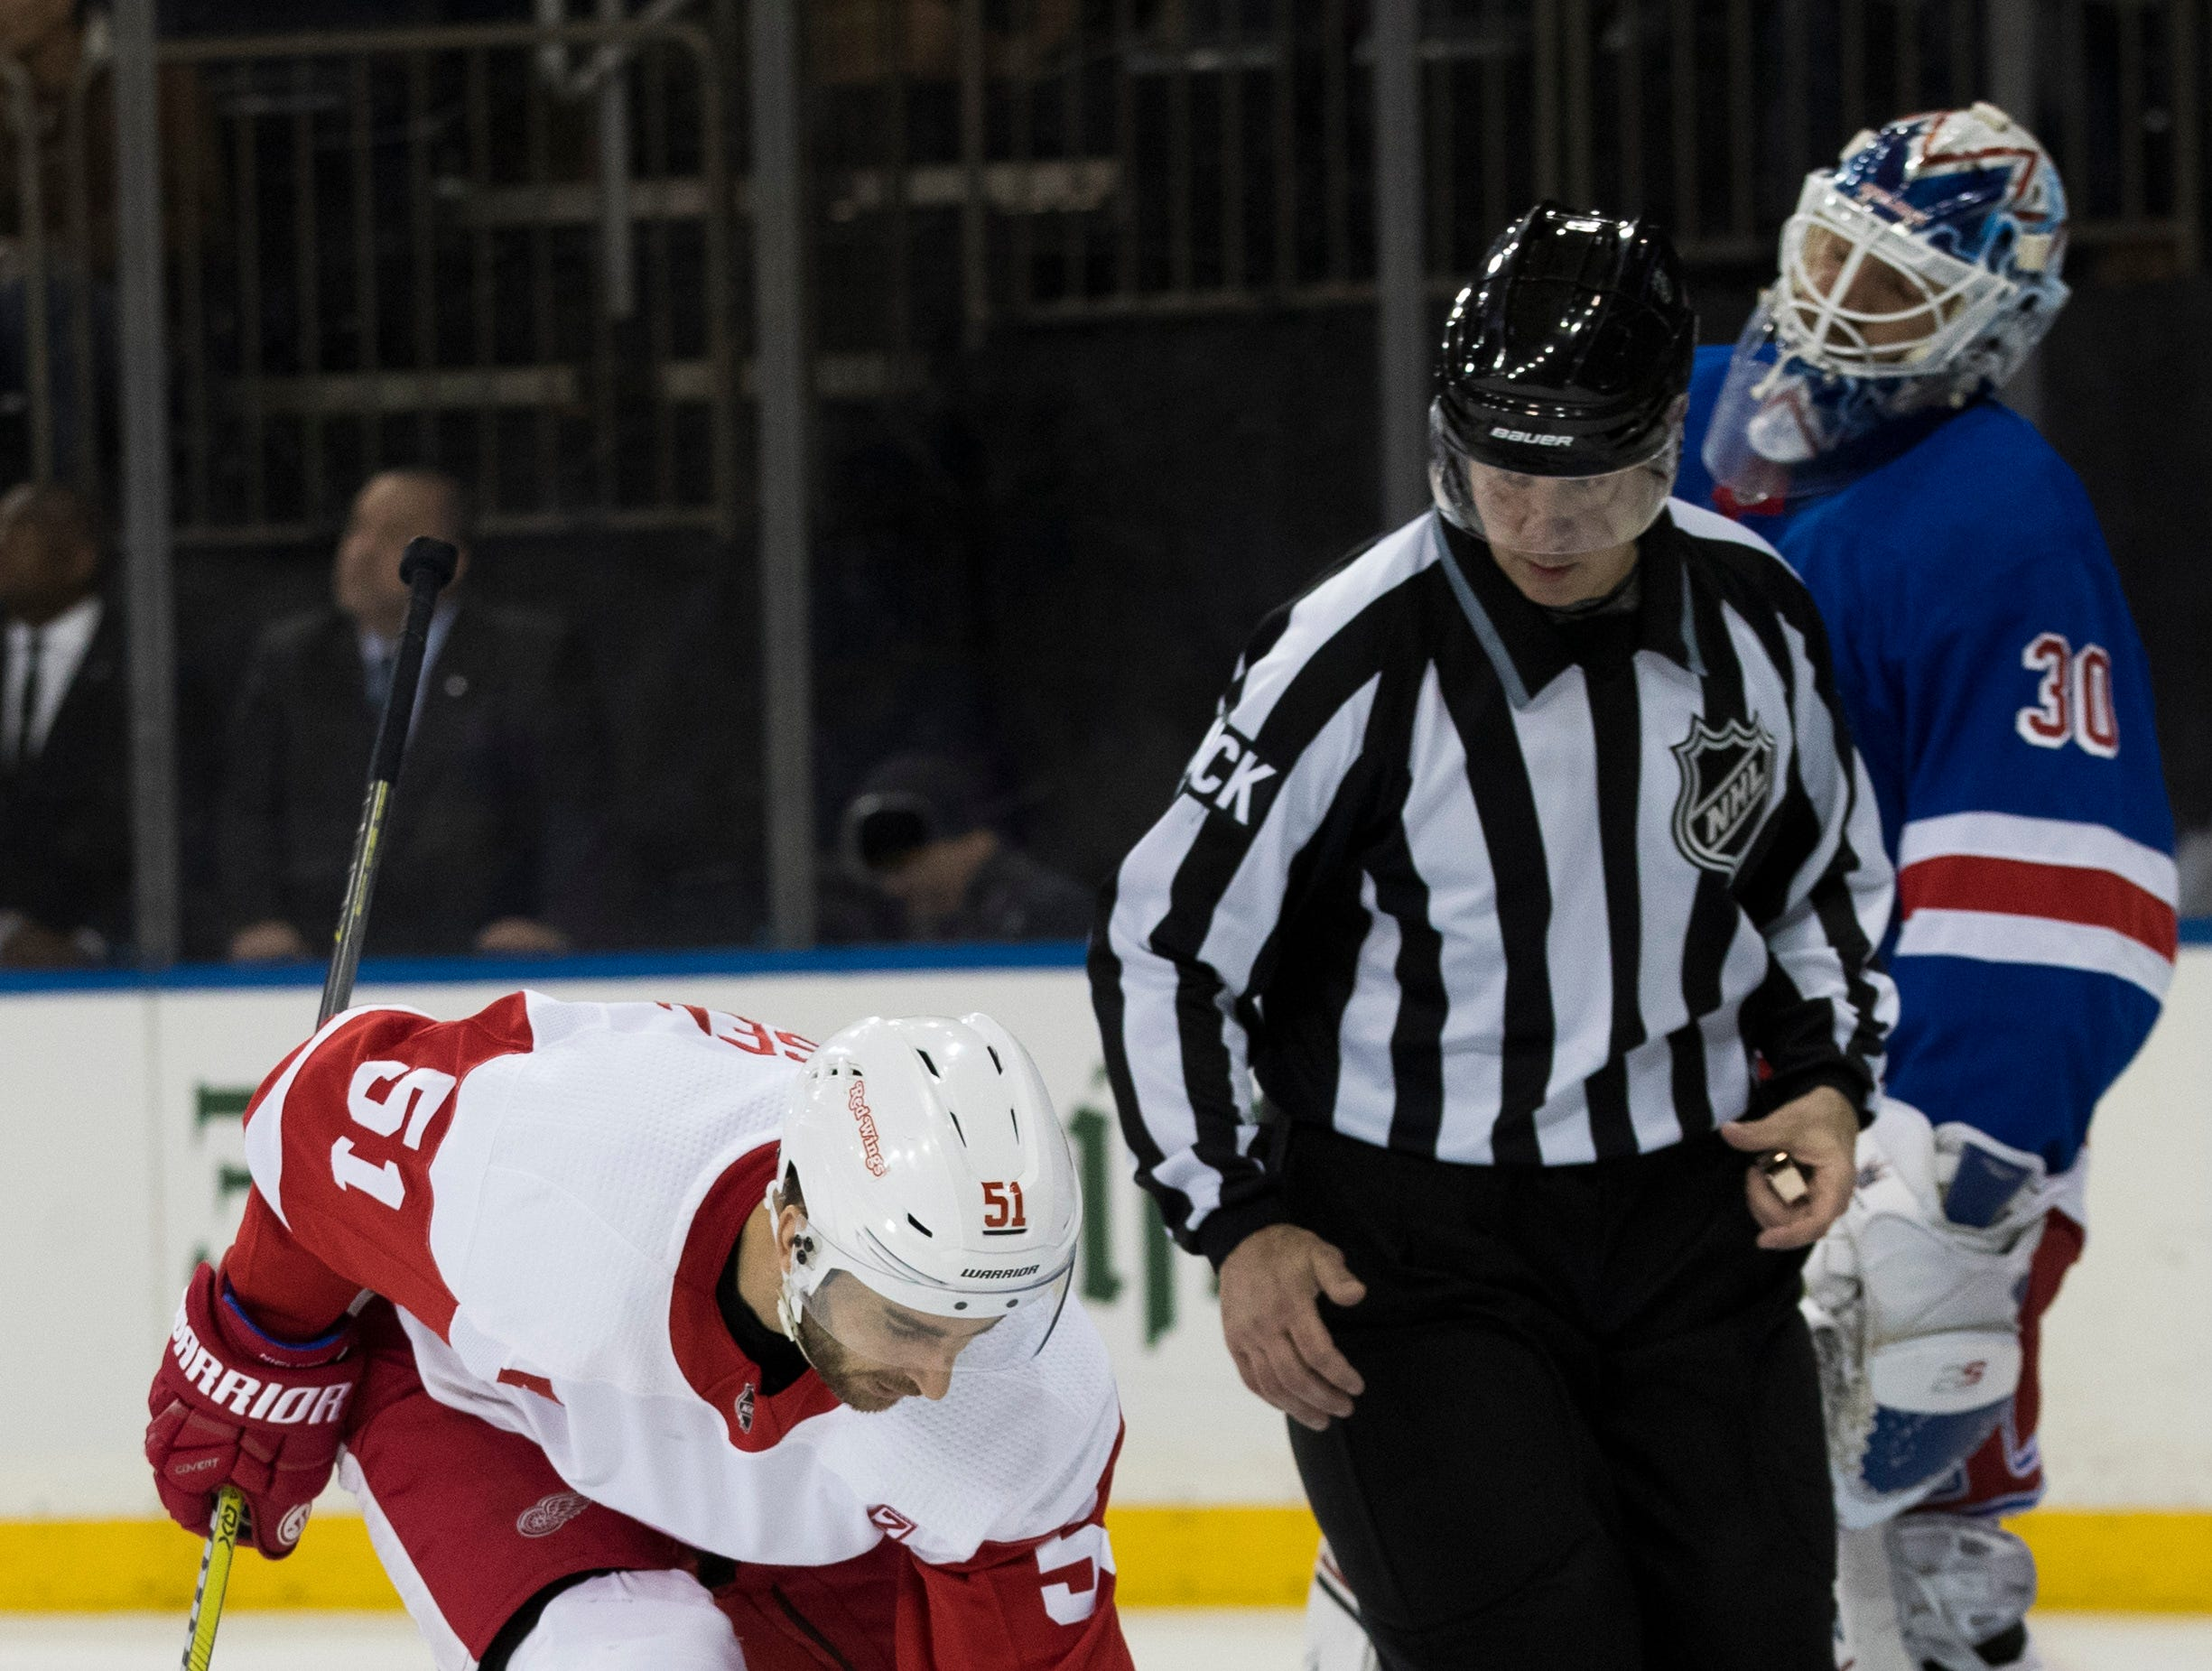 Detroit Red Wings center Frans Nielsen (51) picks up the puck after scoring a goal past New York Rangers goaltender Henrik Lundqvist (30) during the first period.